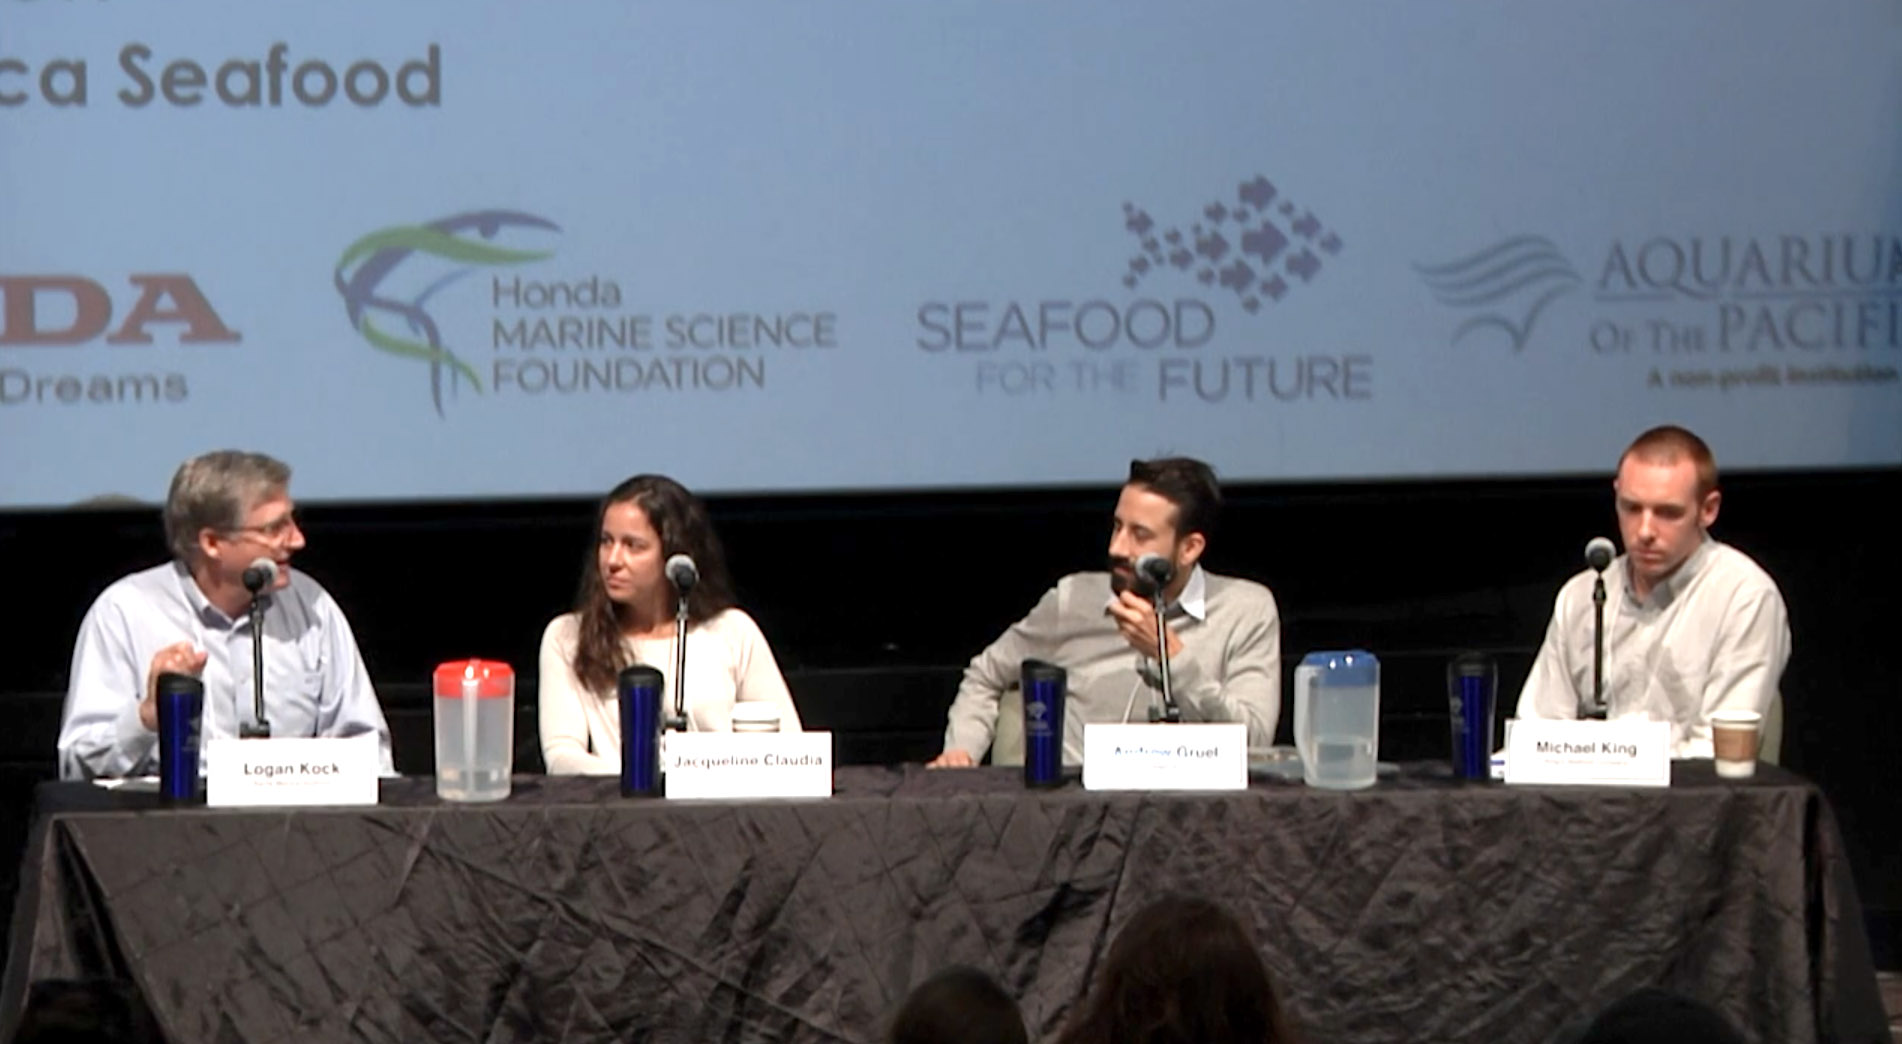 Watch Michael King, Andrew Gruel and others discuss the inner workings of the Seafood industry